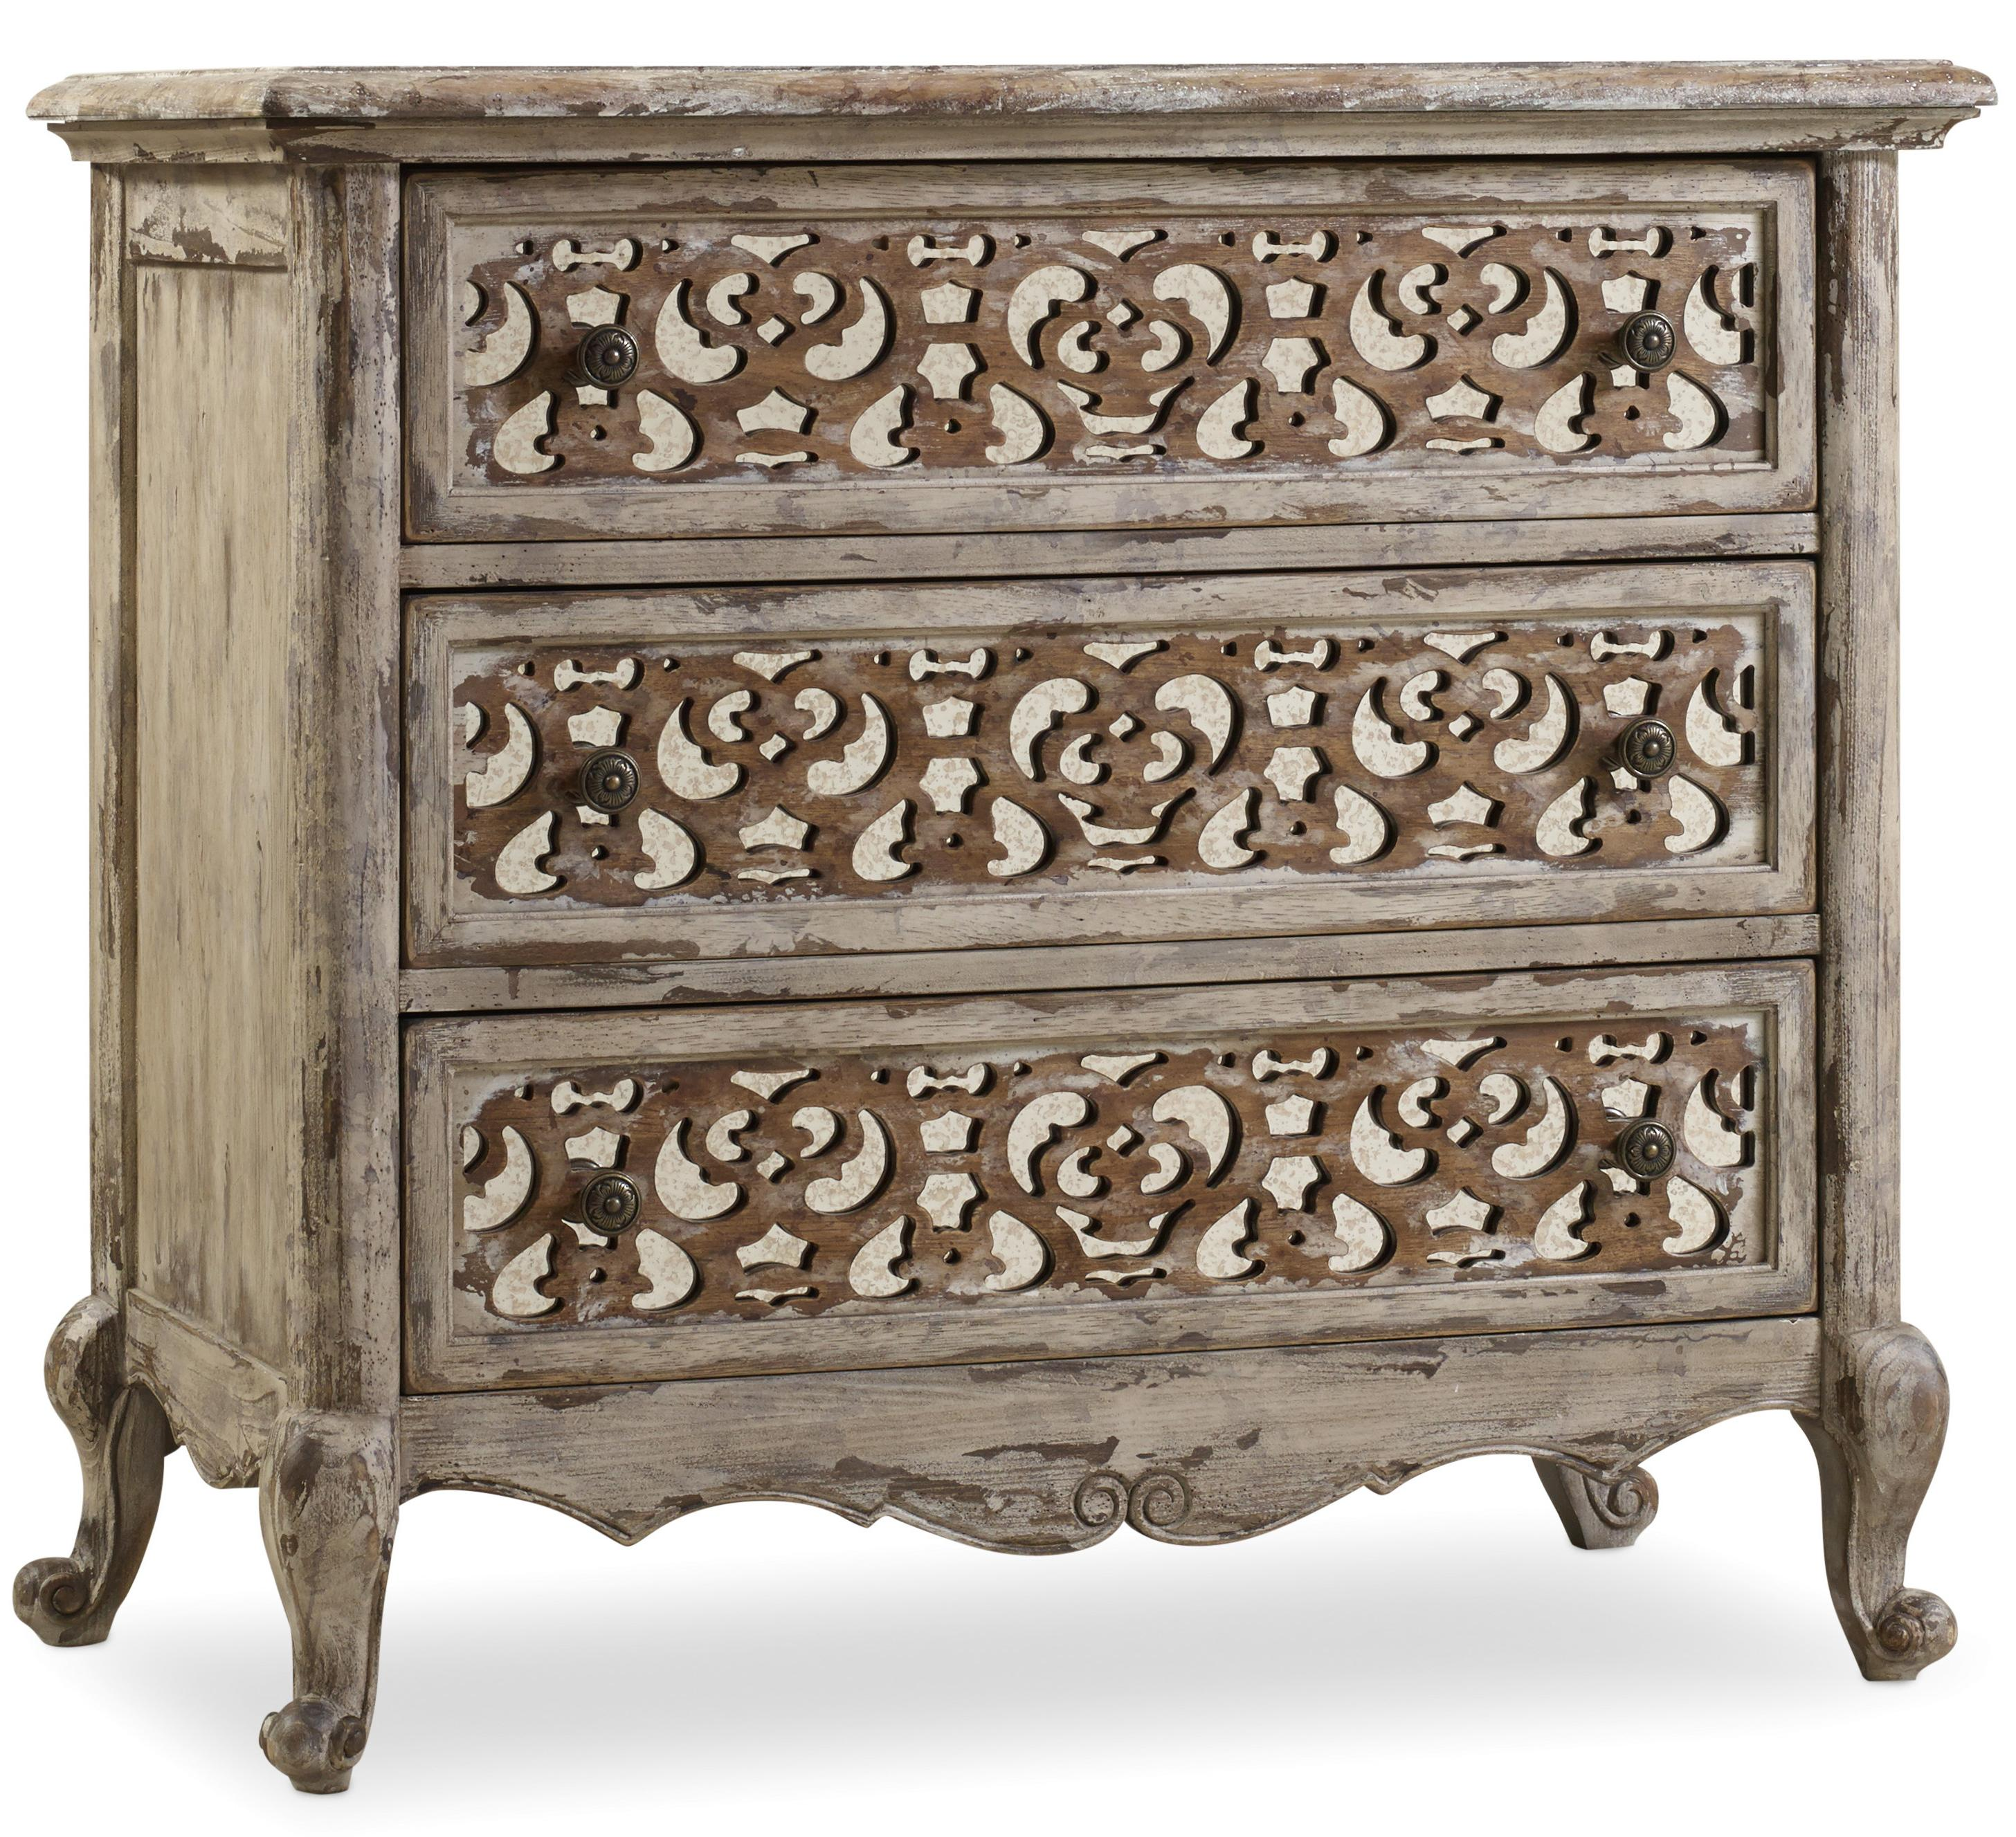 Hooker Furniture Chatelet Fretwork Nightstand - Item Number: 5351-90016